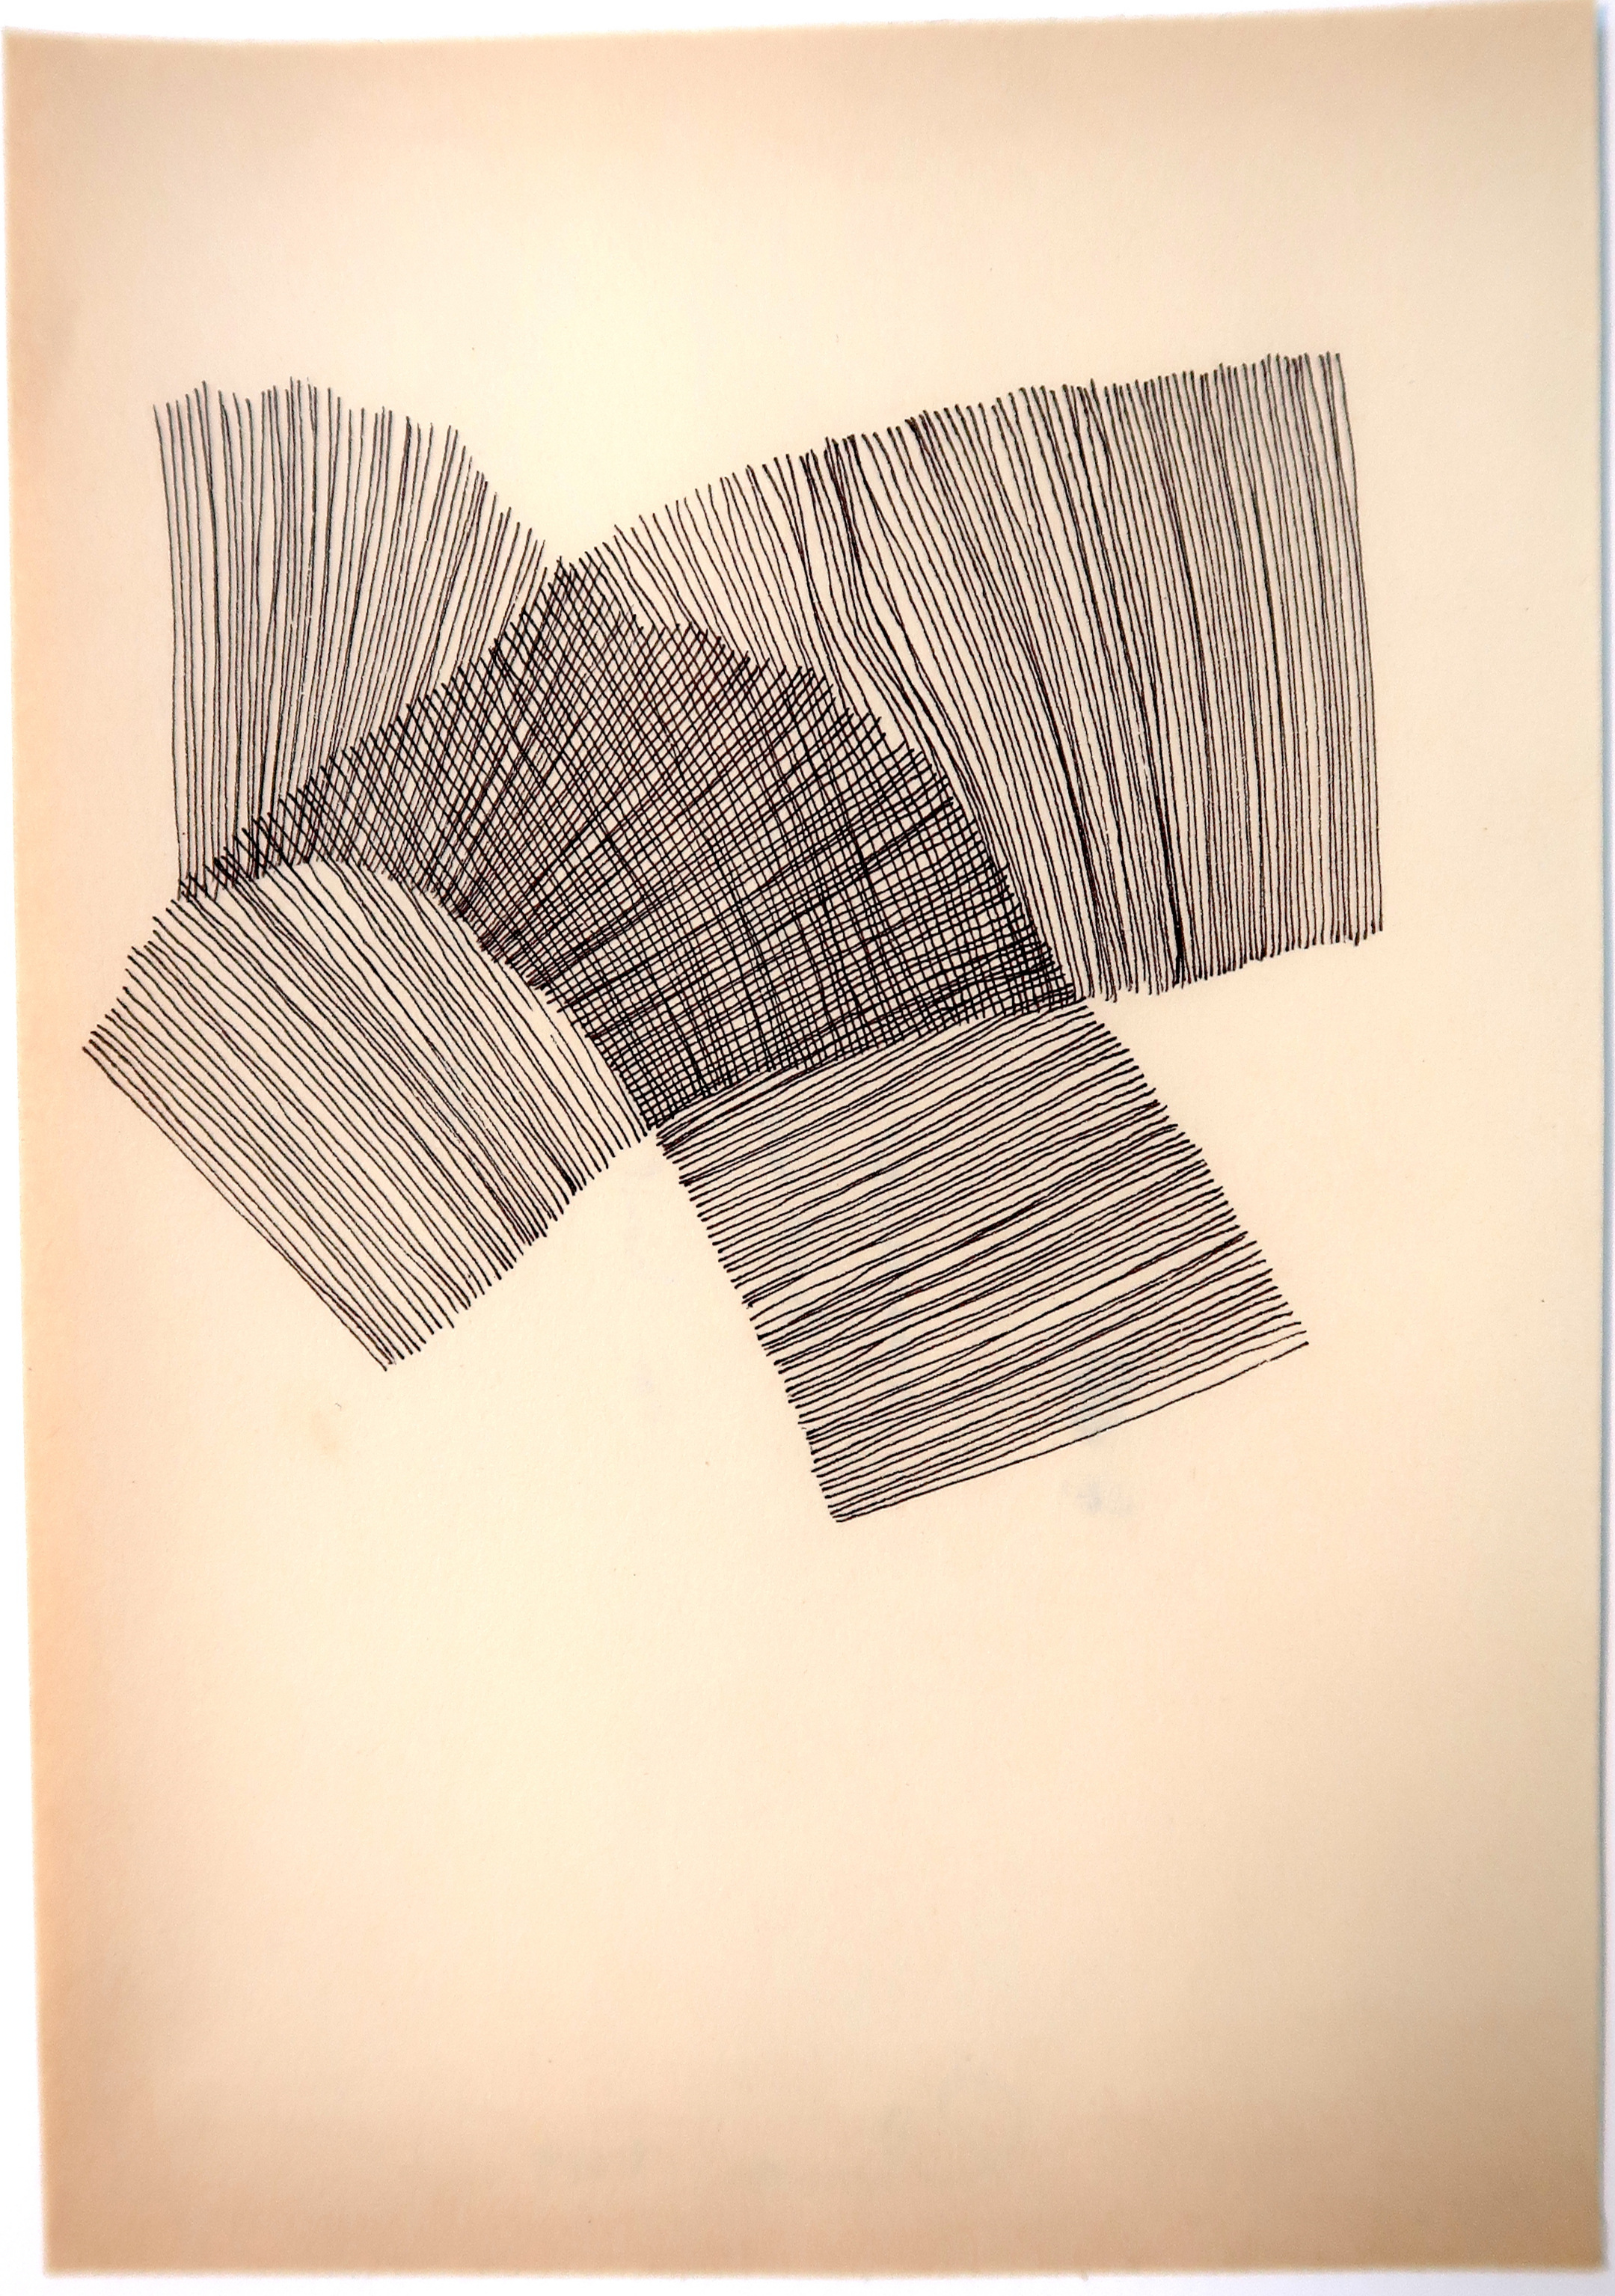 Amy Rathbone, untitled 1a (not knowing is nearest), 2019. ink on book paper. 5 x 7 inches..